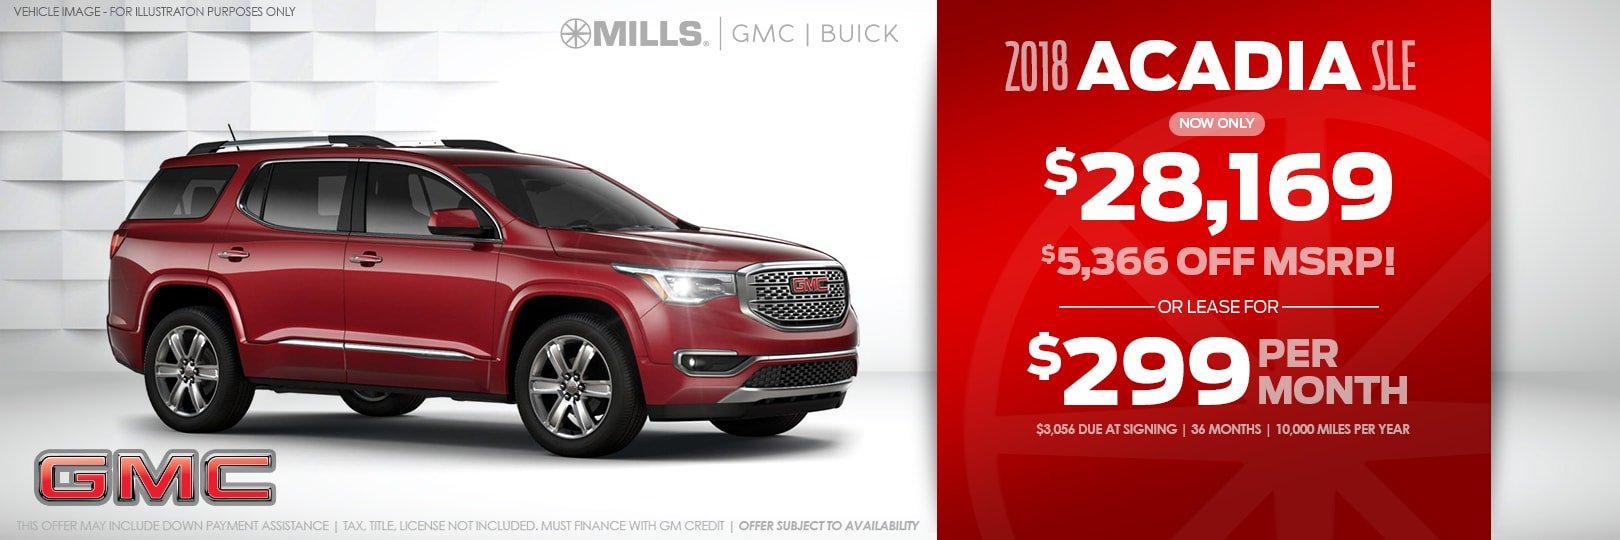 Mills GMC Buick New Buick GMC Dealership In Baxter MN - Buick dealerships in minnesota